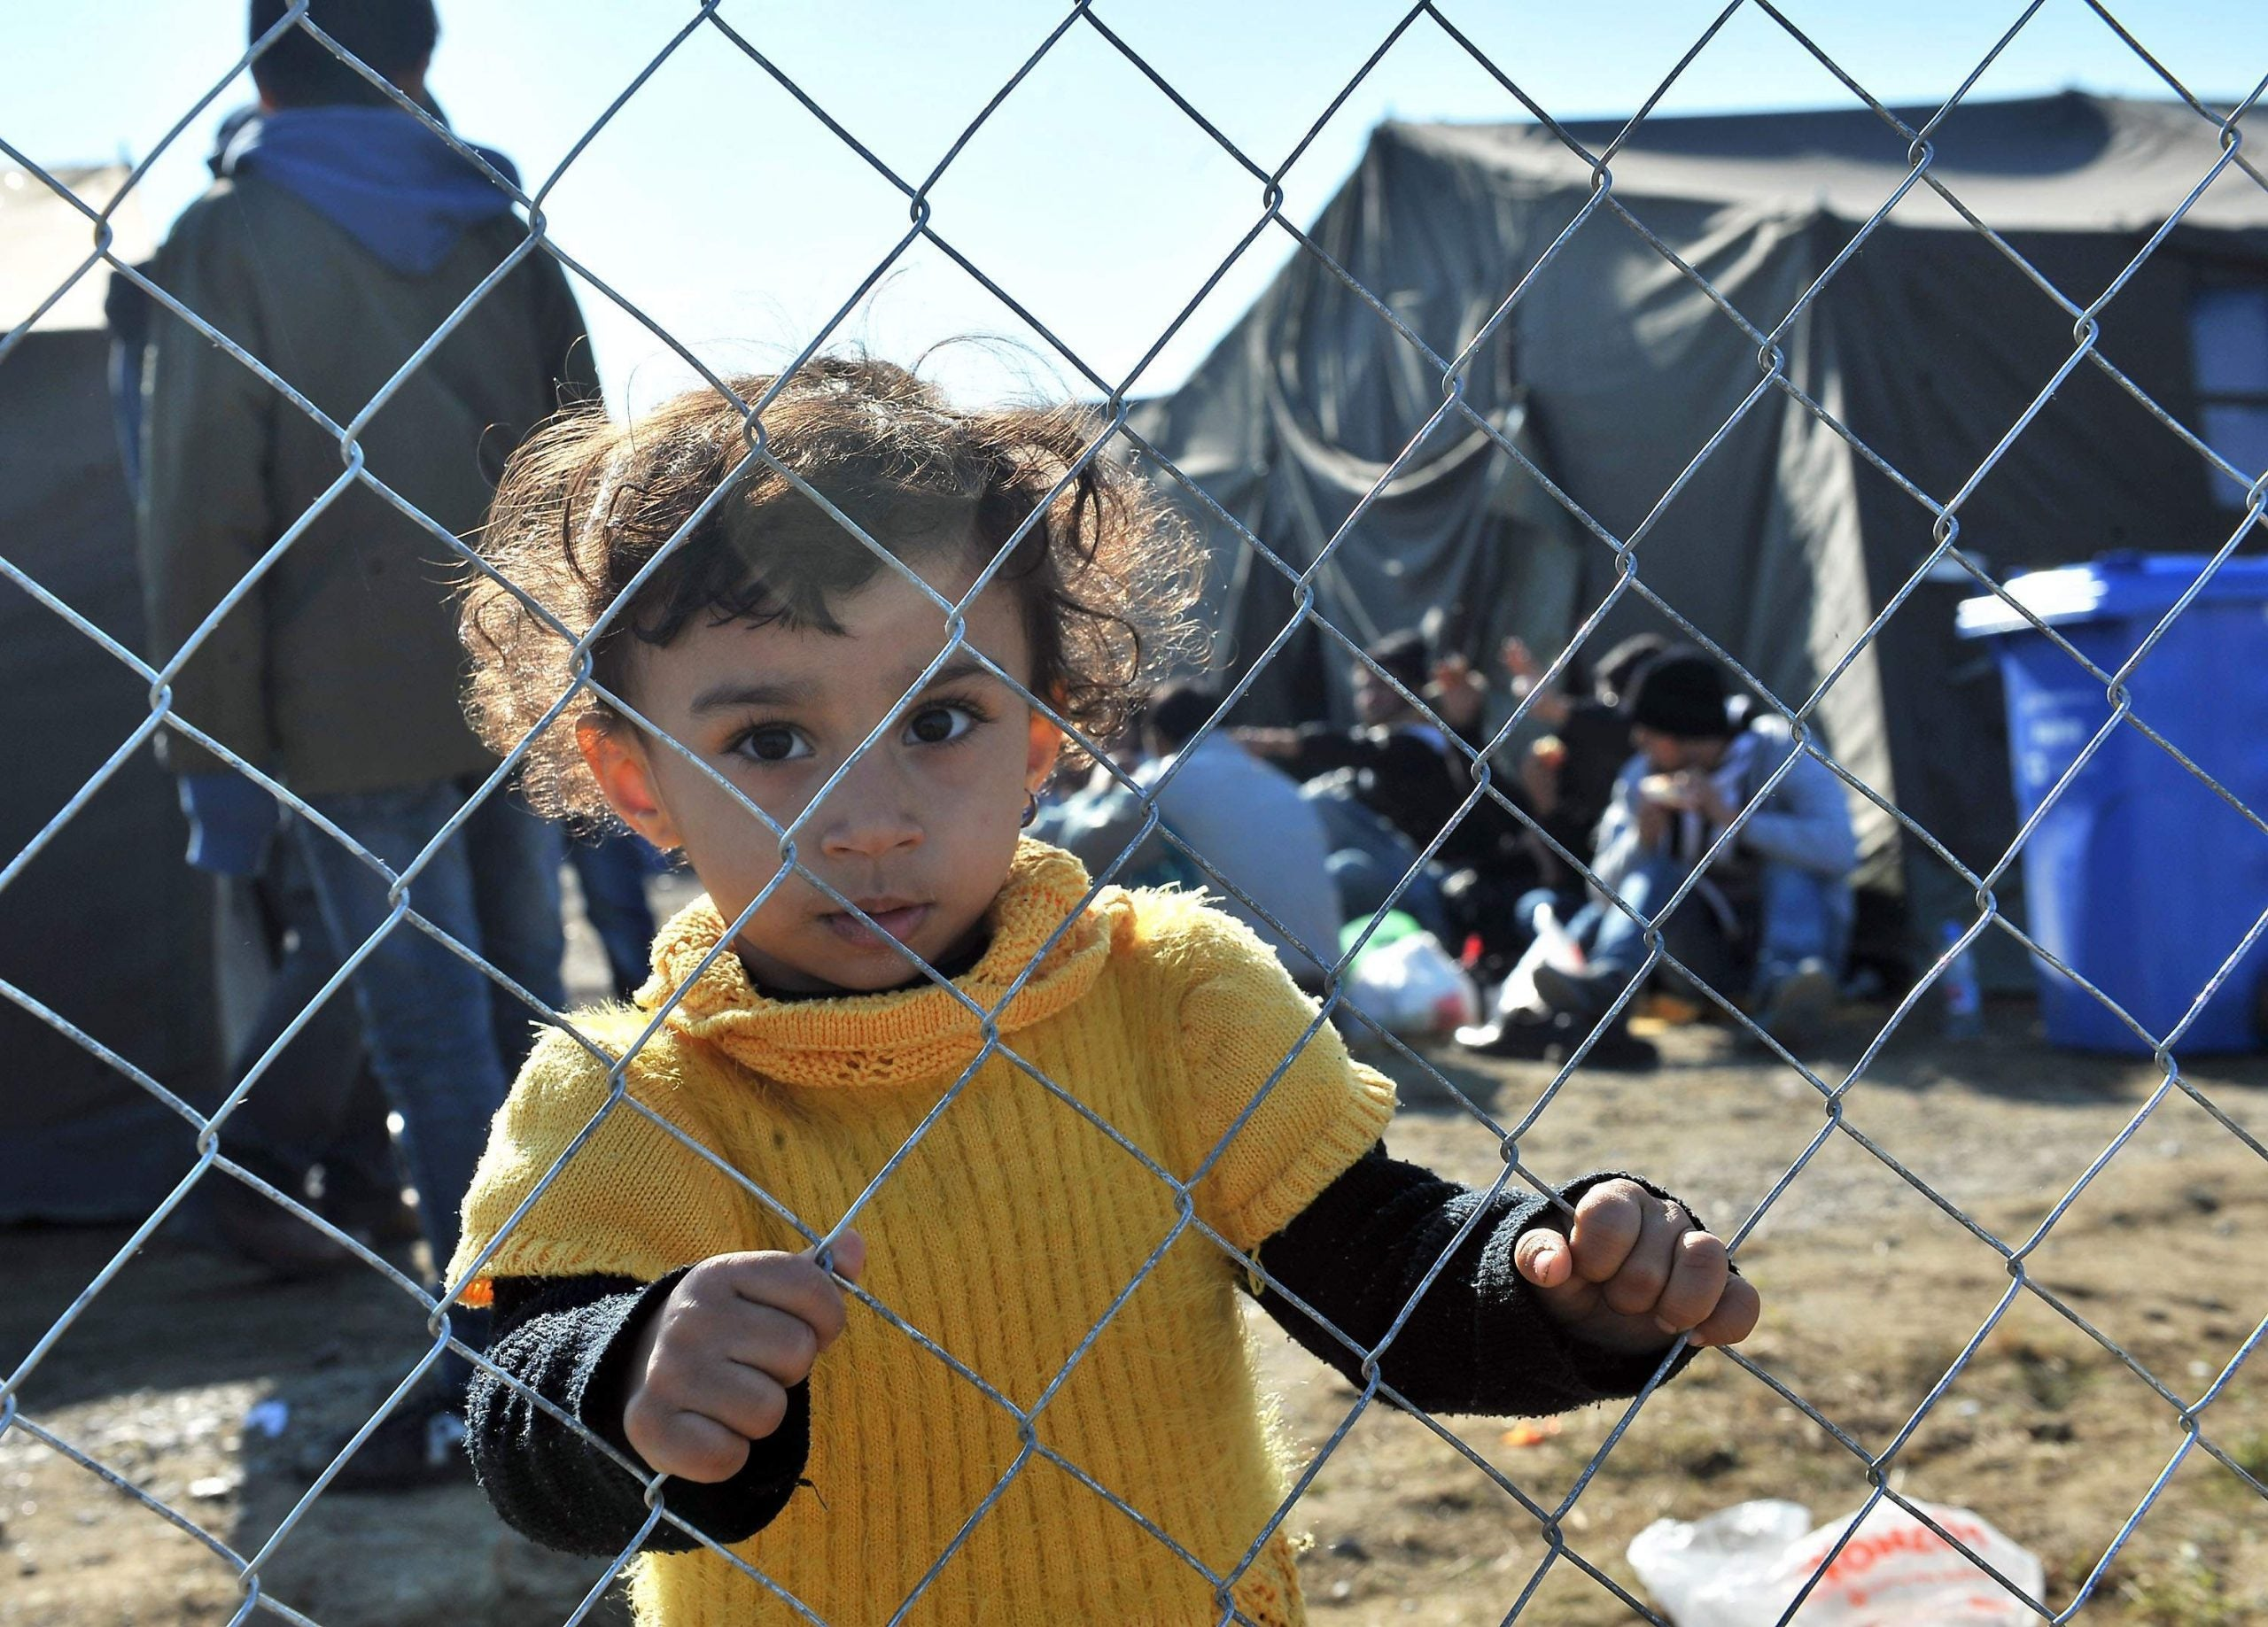 Enough handwringing - here's something that could actually be done to help Europe's refugees